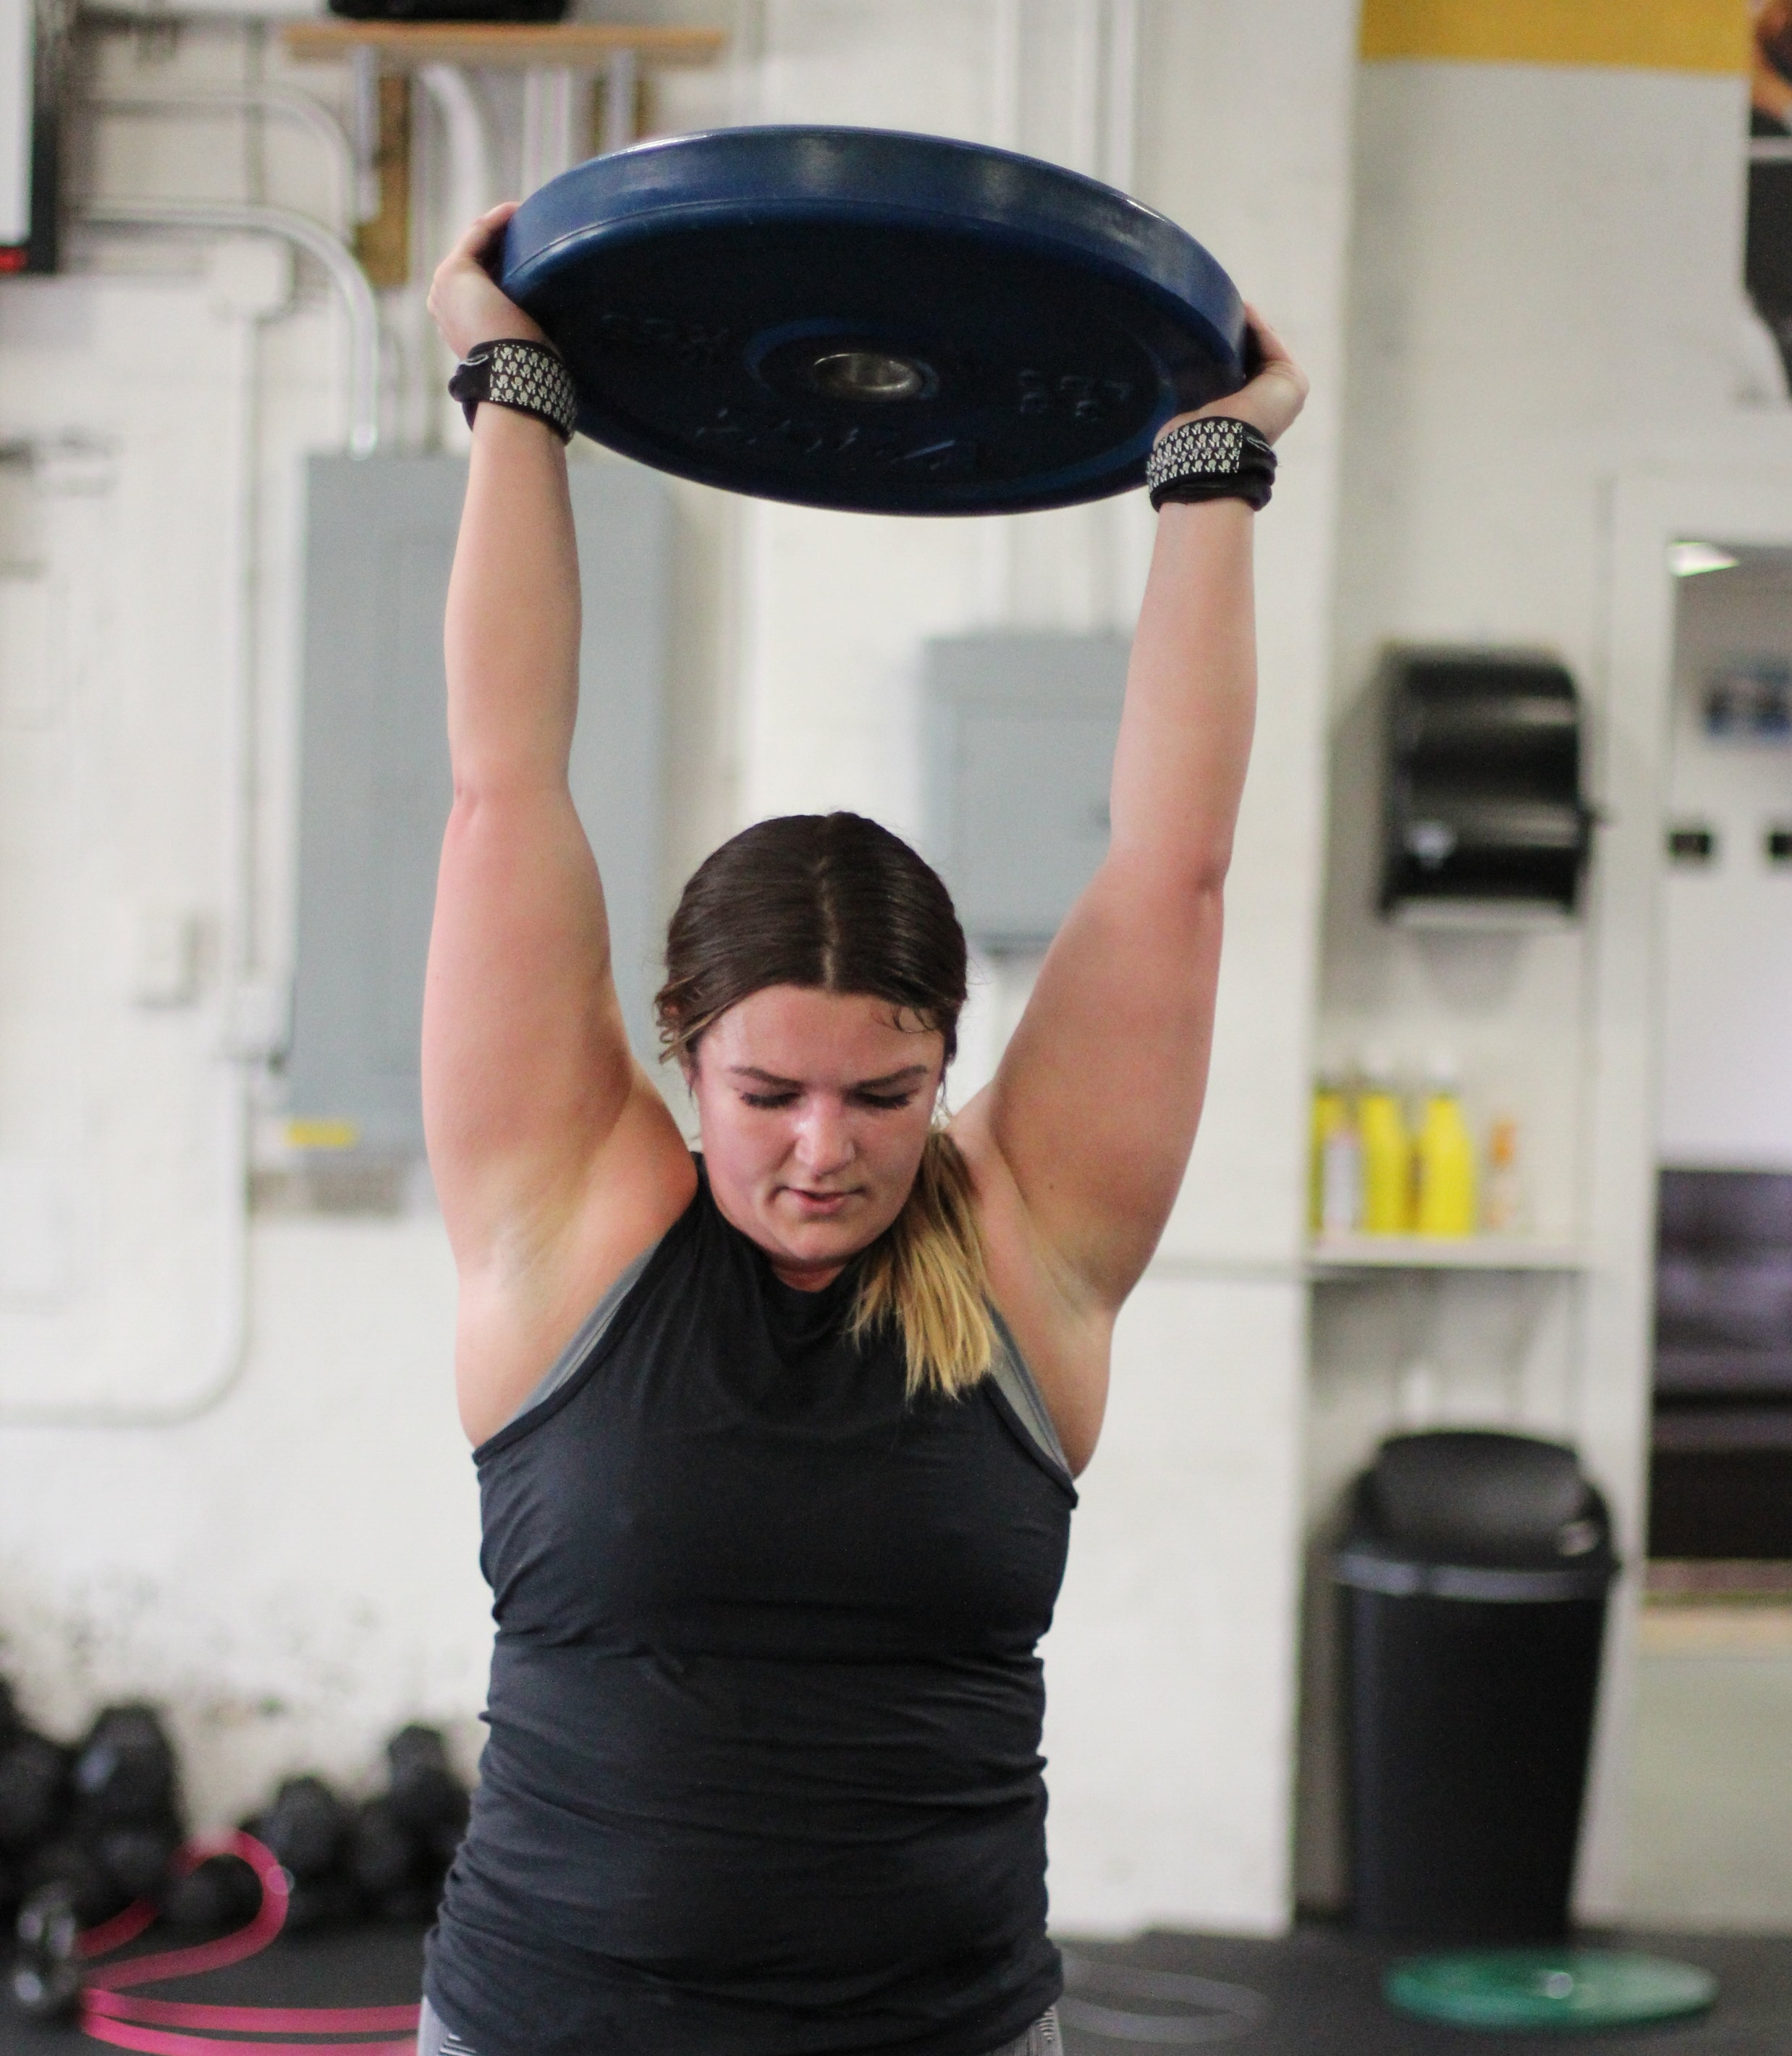 PVCF Hiit Coach Jessica Morse gets after the Overhead Walking Lunges!